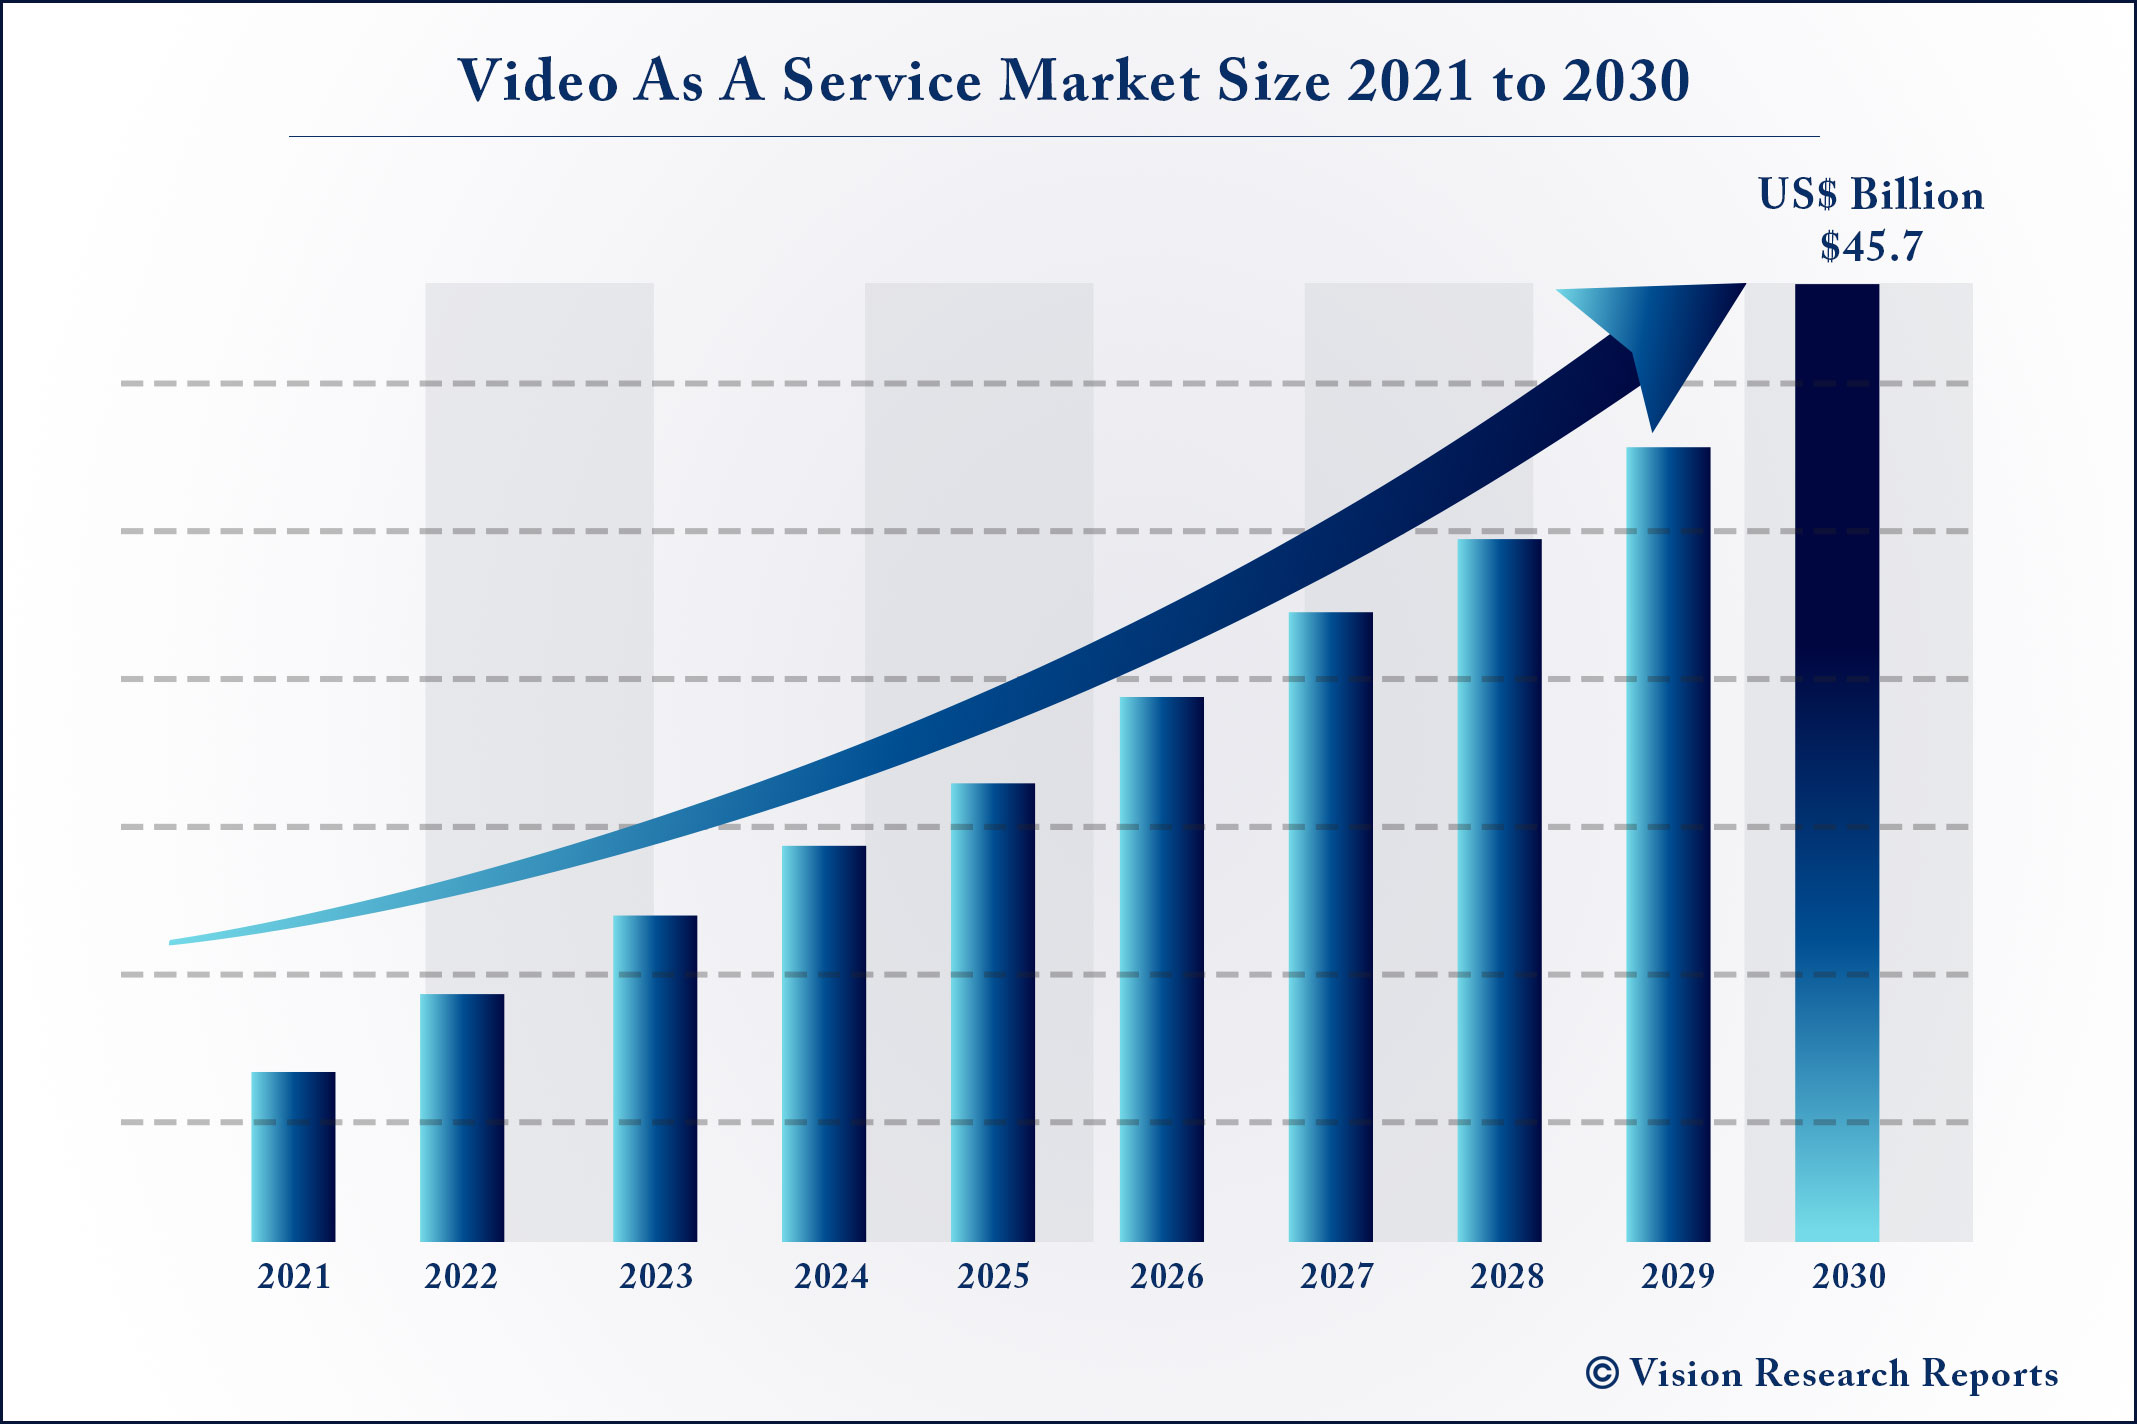 Video As A Service Market Size 2021 to 2030